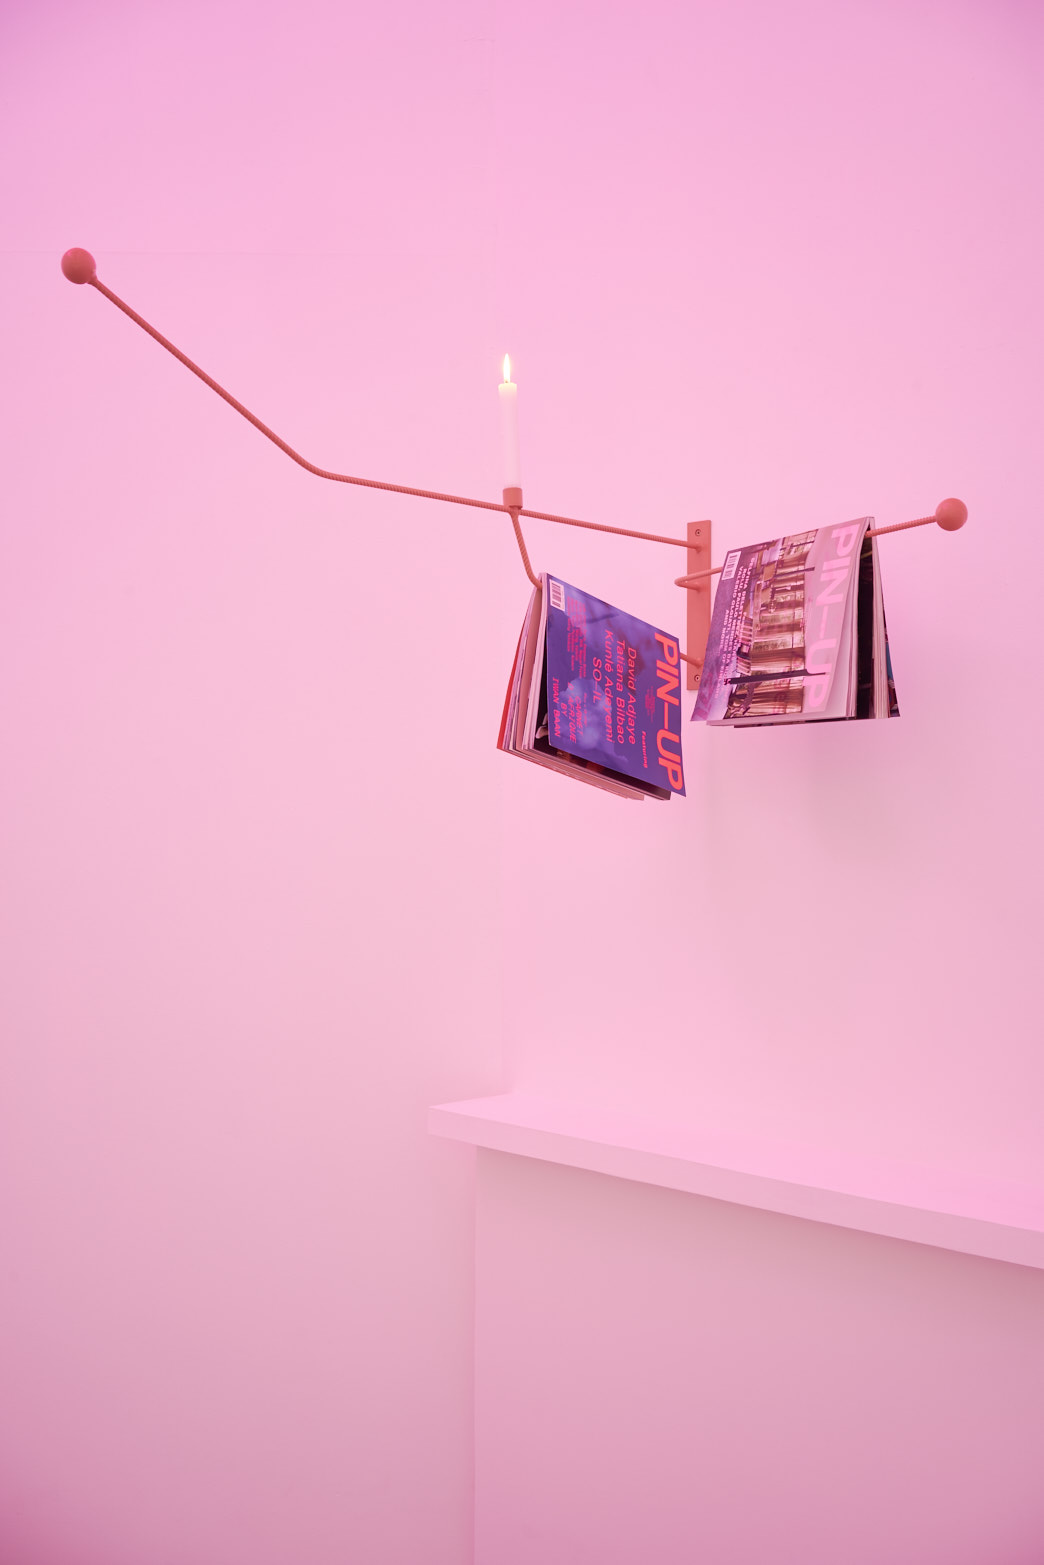 Richard Healy, PIN-UP, 2016. Powder-coated steel with magazines, wax candle. Tenderpixel.